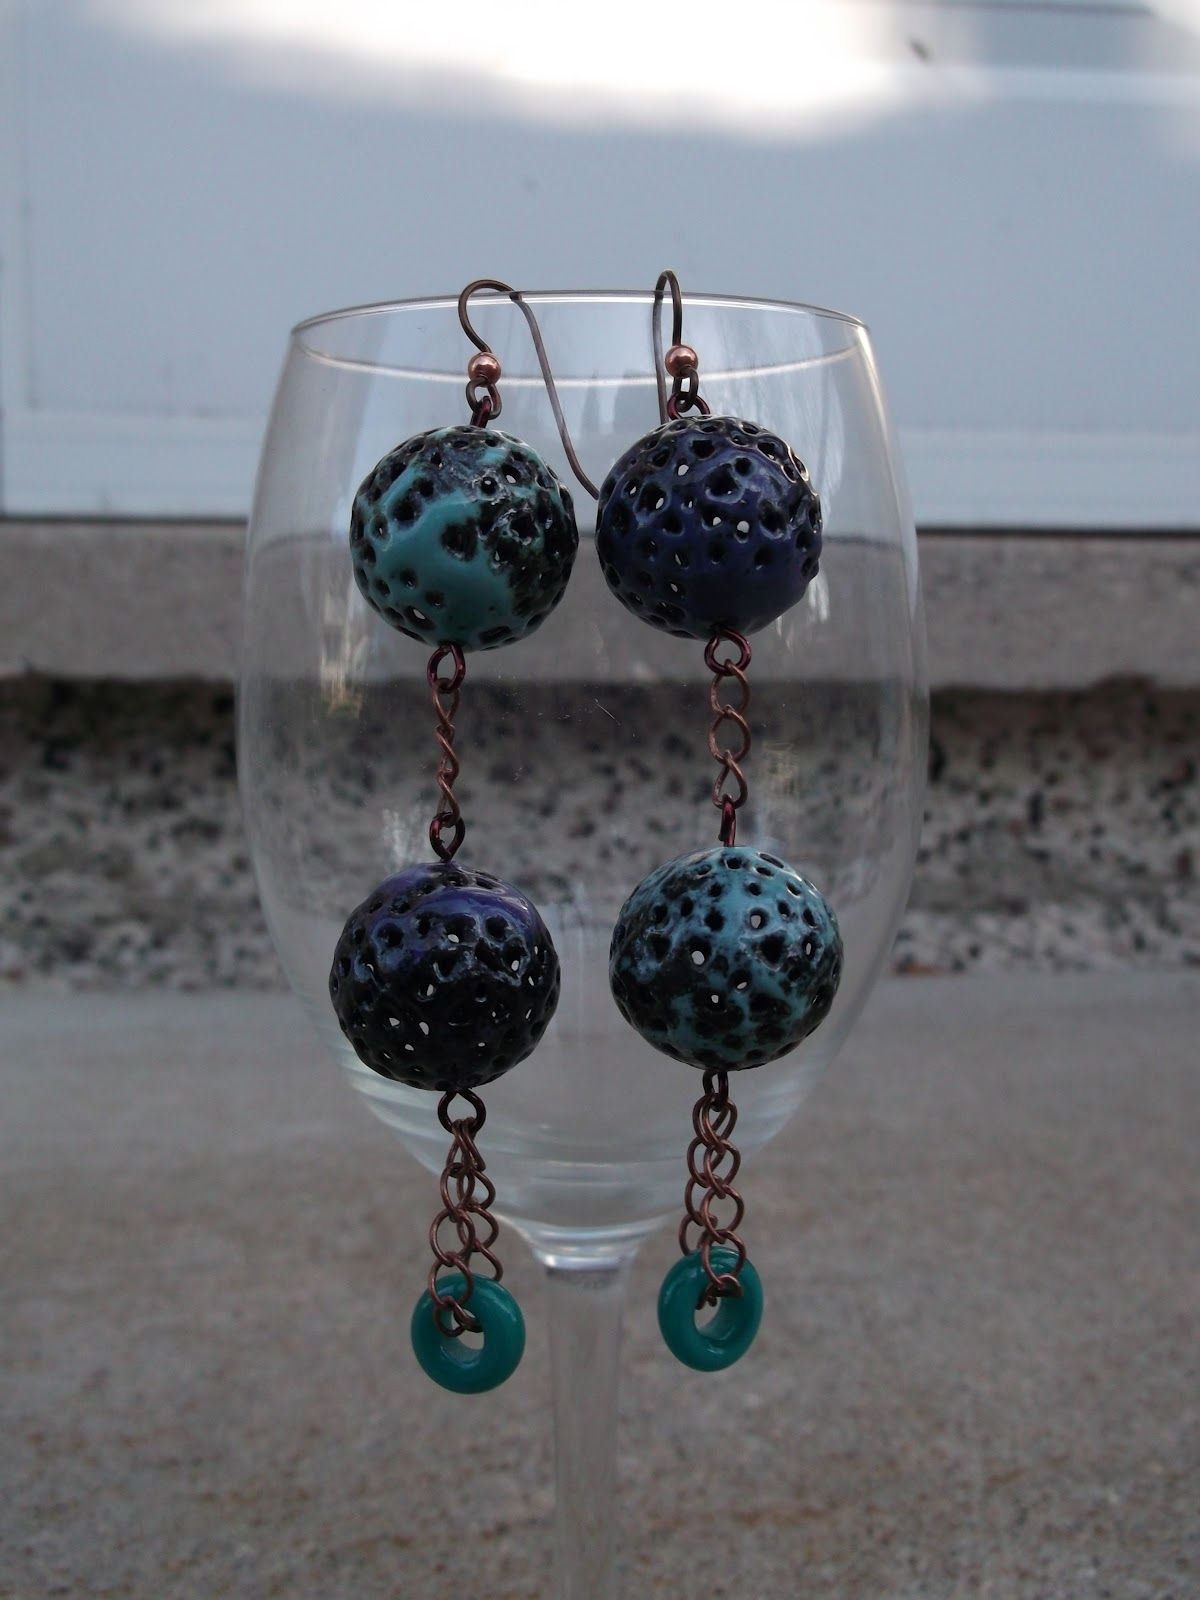 Defrosted some soup  Last week I pulled out the some of the extra beads that I had received in my first BSBP from Lynne Bowland. I made a couple of pairs of earrings with some of them. Slowly but surely, I will be able to do justice to the soups I've been sent